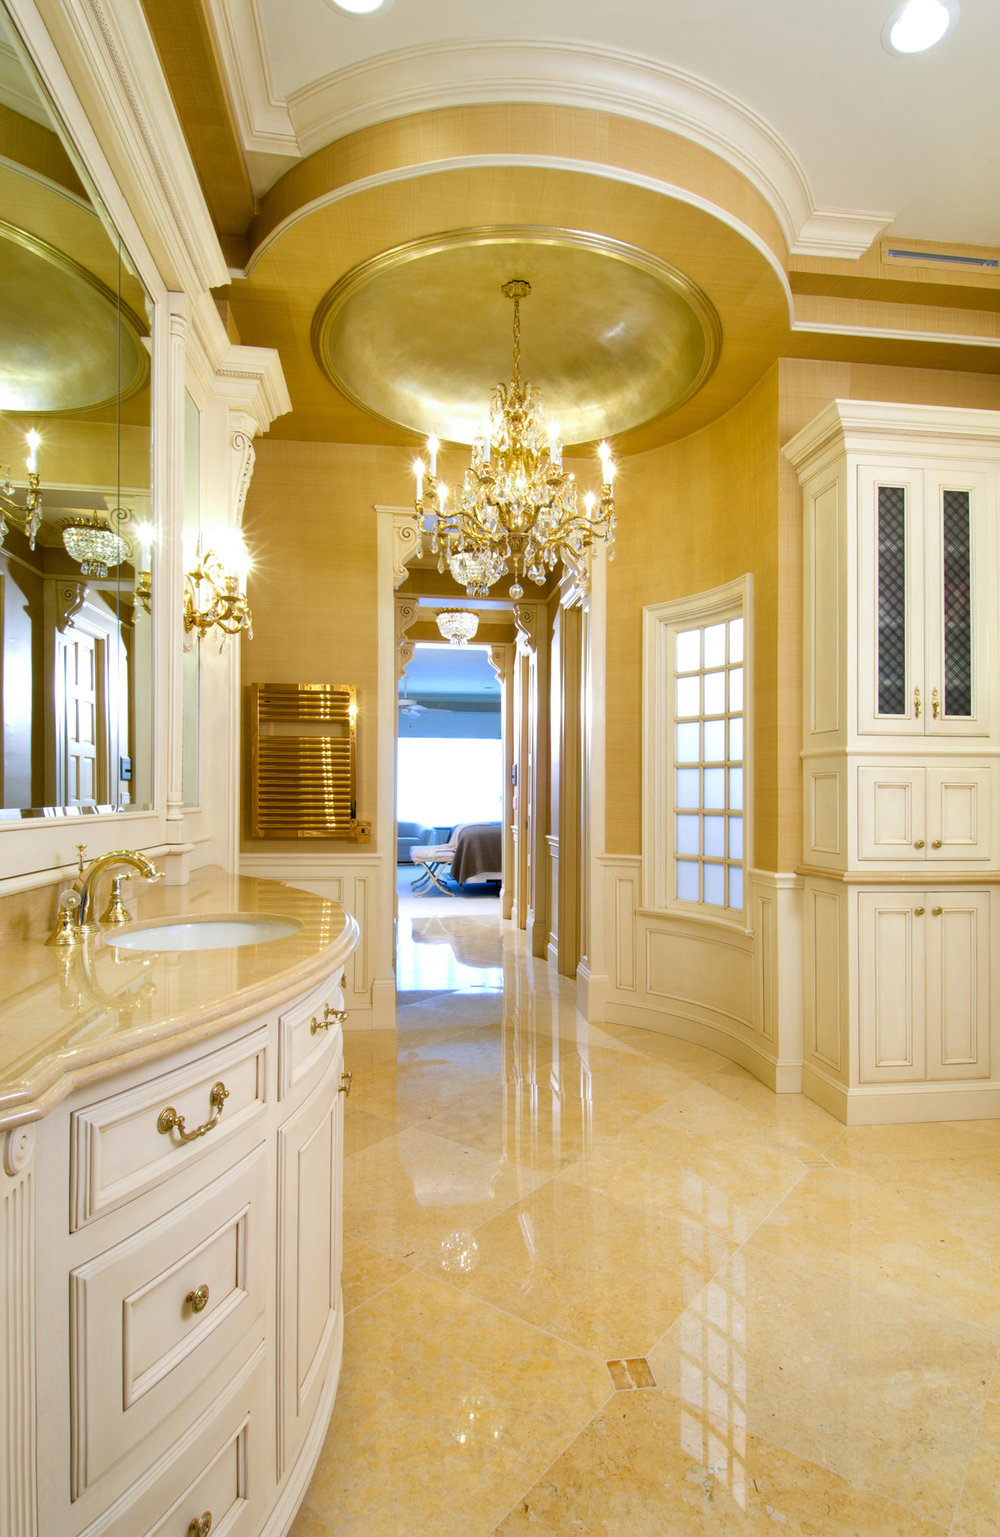 kitchen_bath_concepts_wholehome1_2.jpg